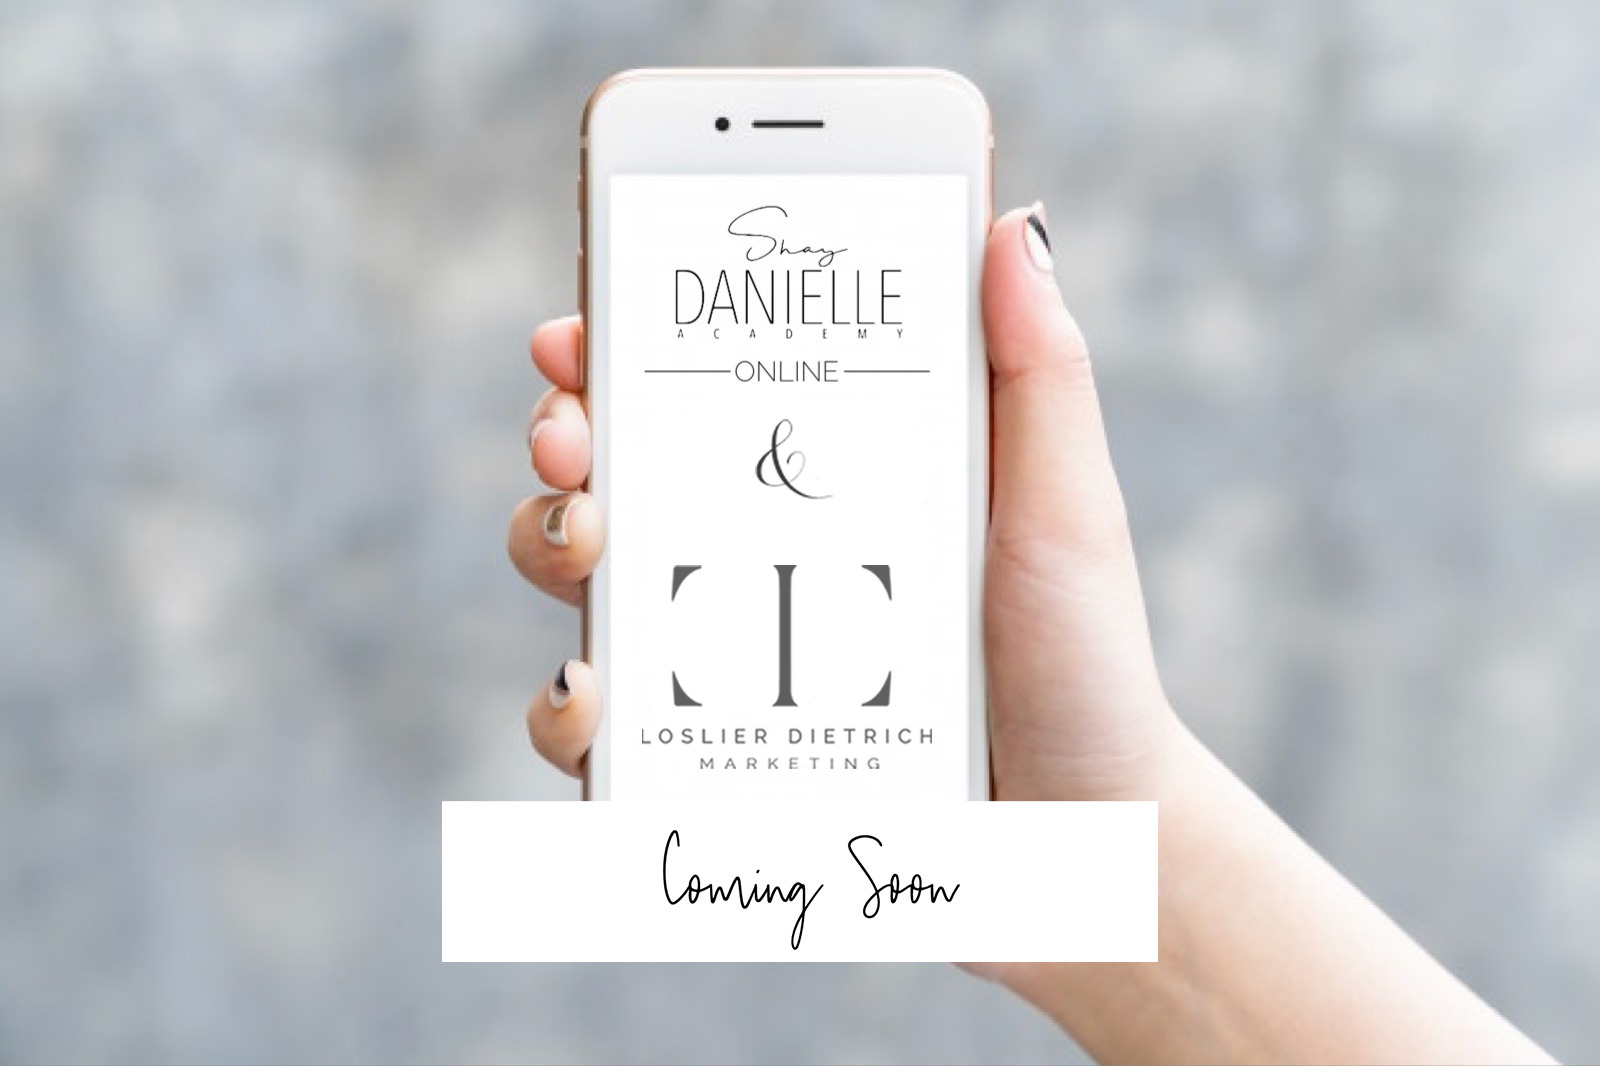 Marketing Your Beauty Business Like A Pro | Shay Danielle Academy Online